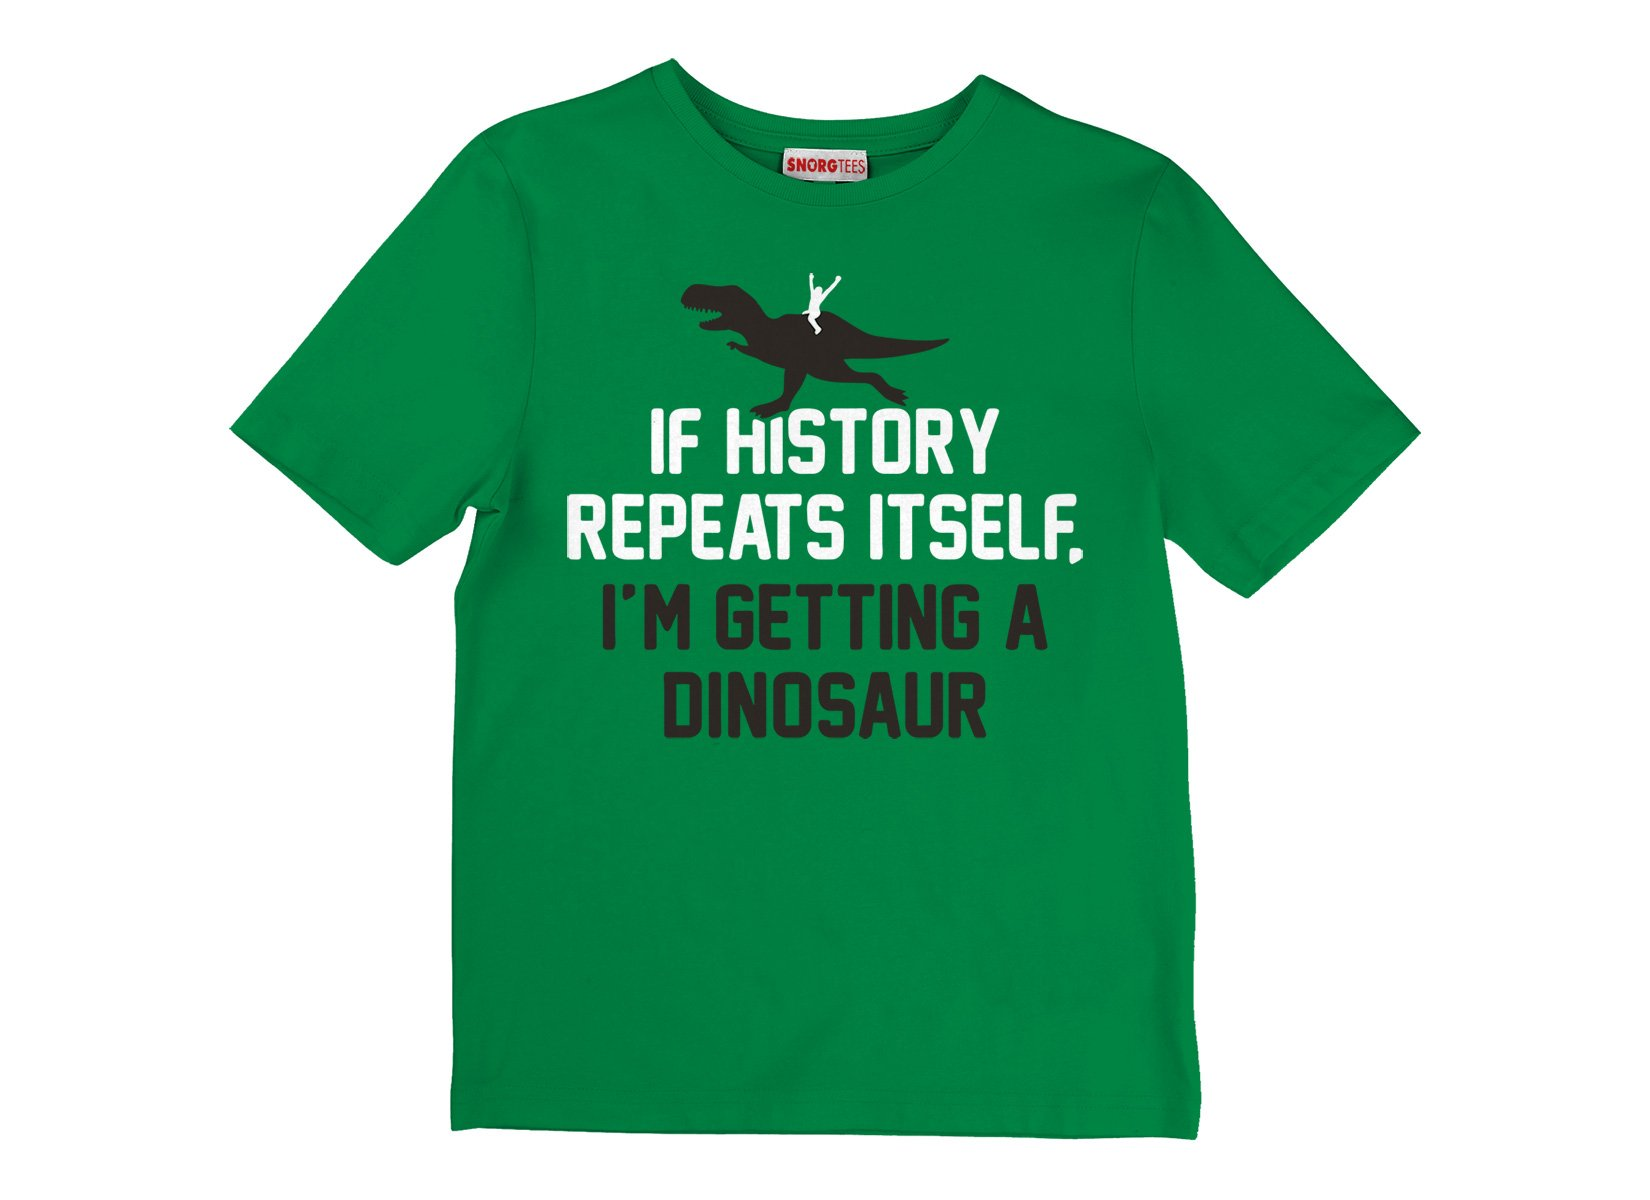 If History Repeats Itself, I'm Getting A Dinosaur on Kids T-Shirt